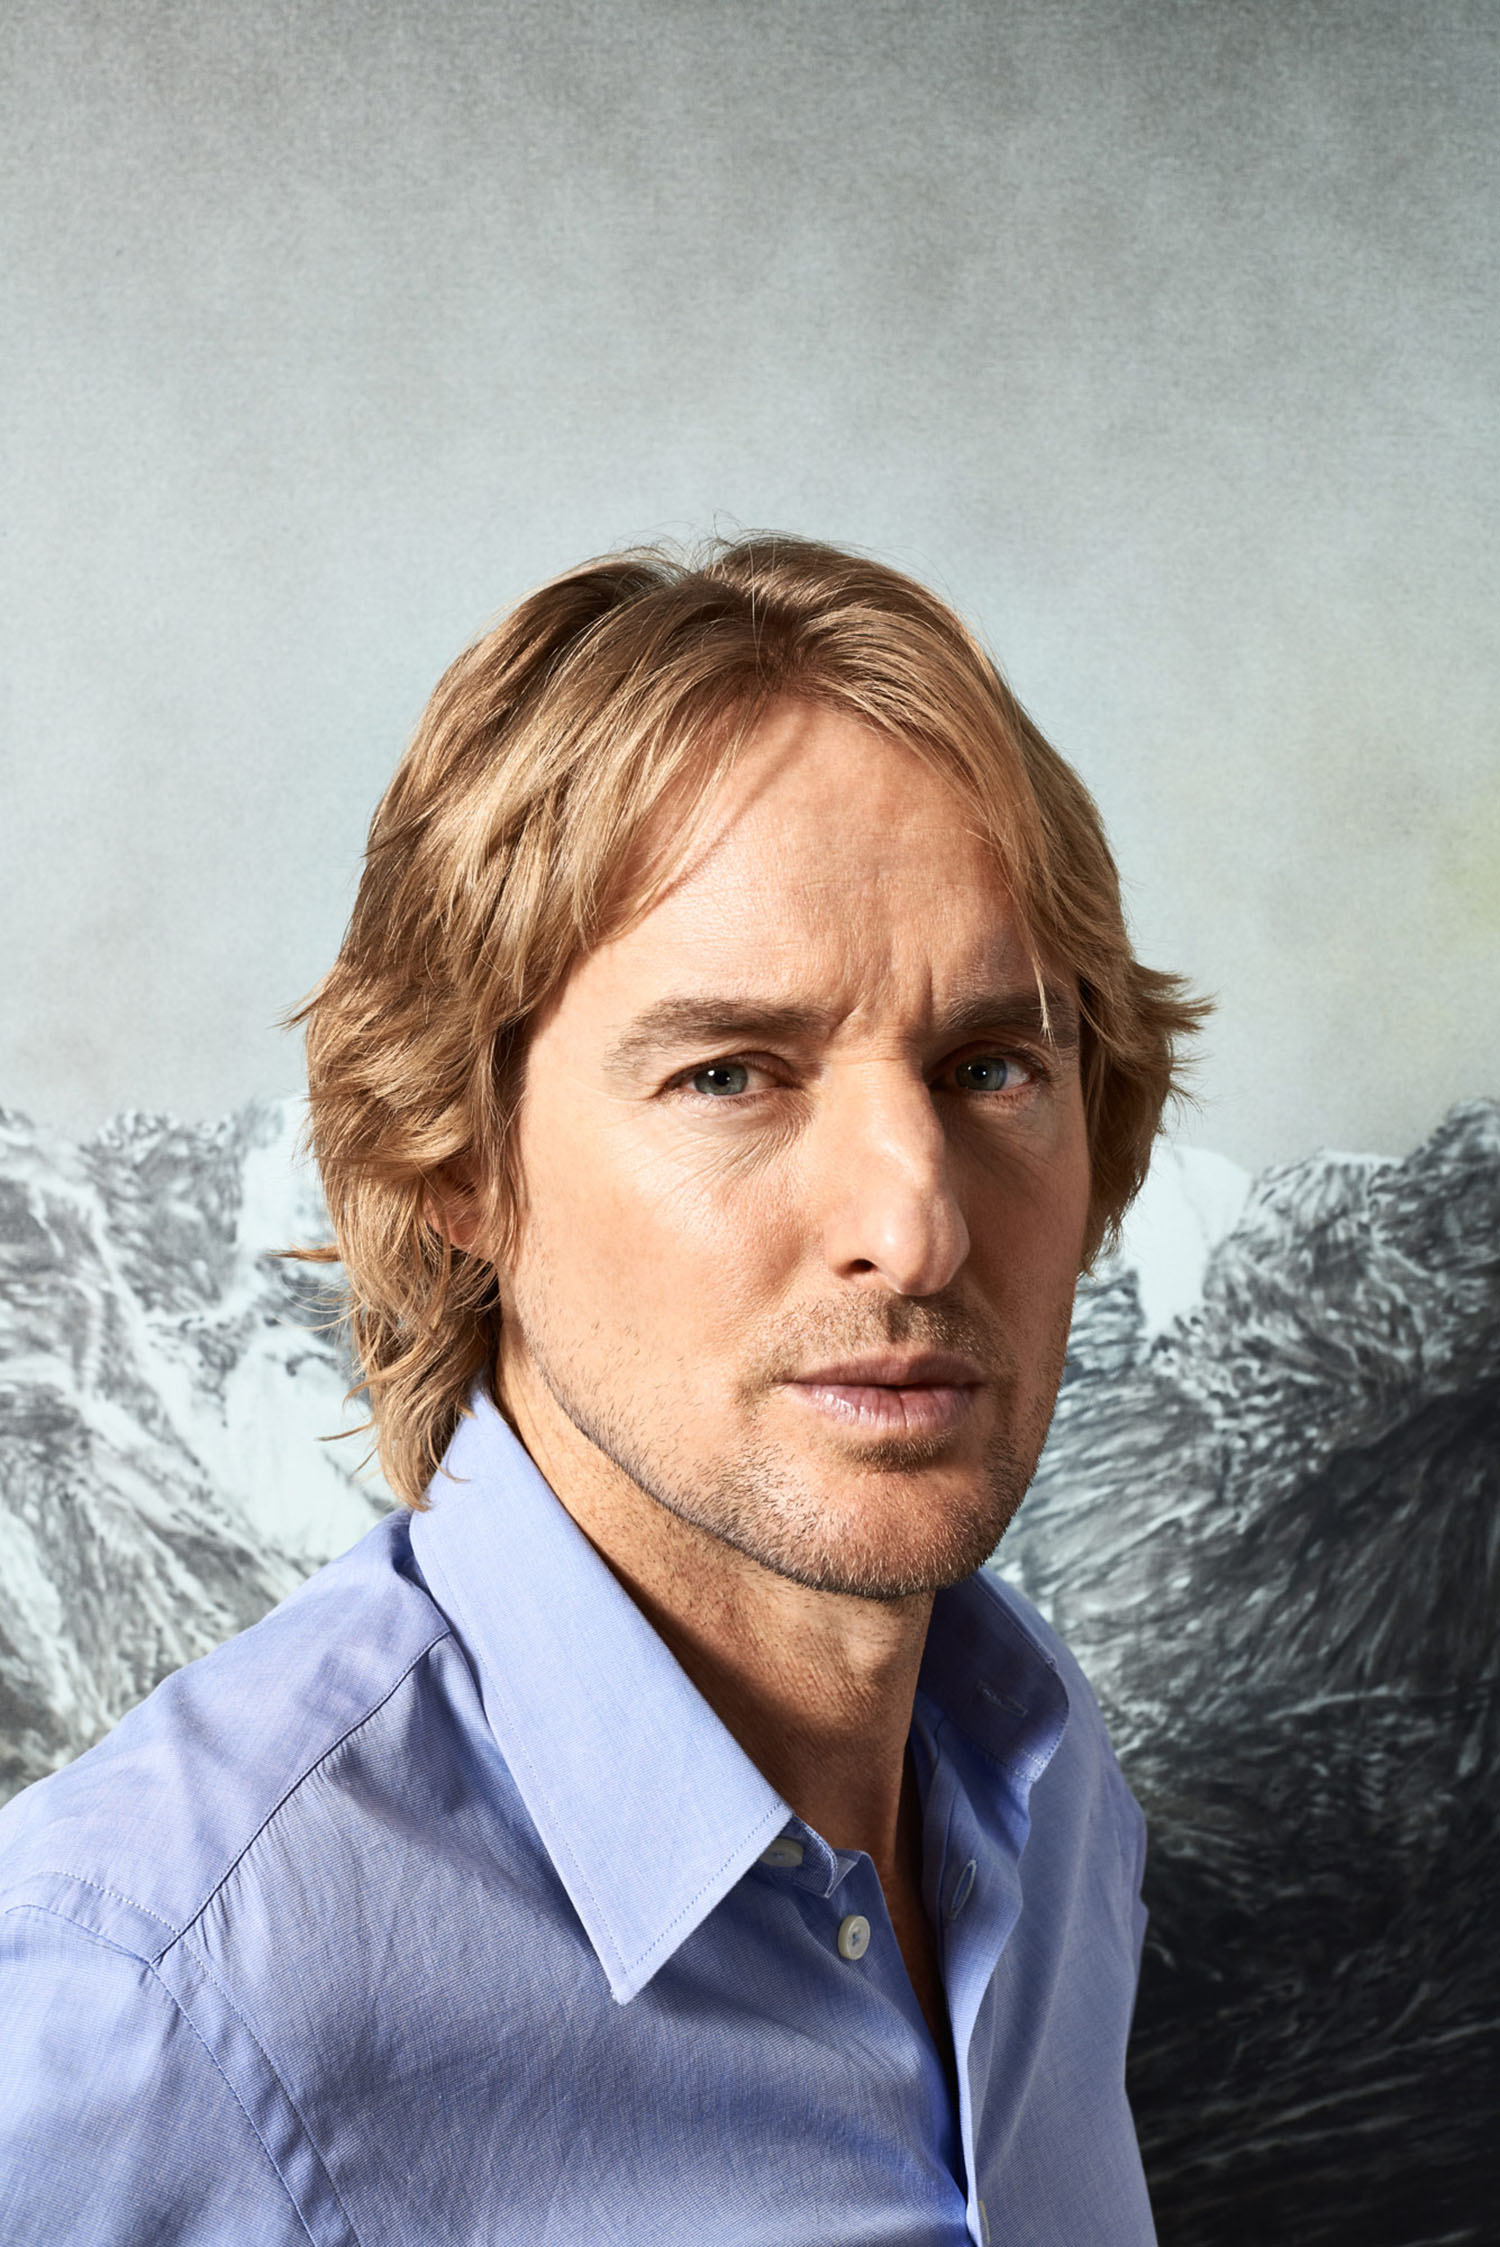 Owen Wilson, Actor, Los Angeles, California, 2013